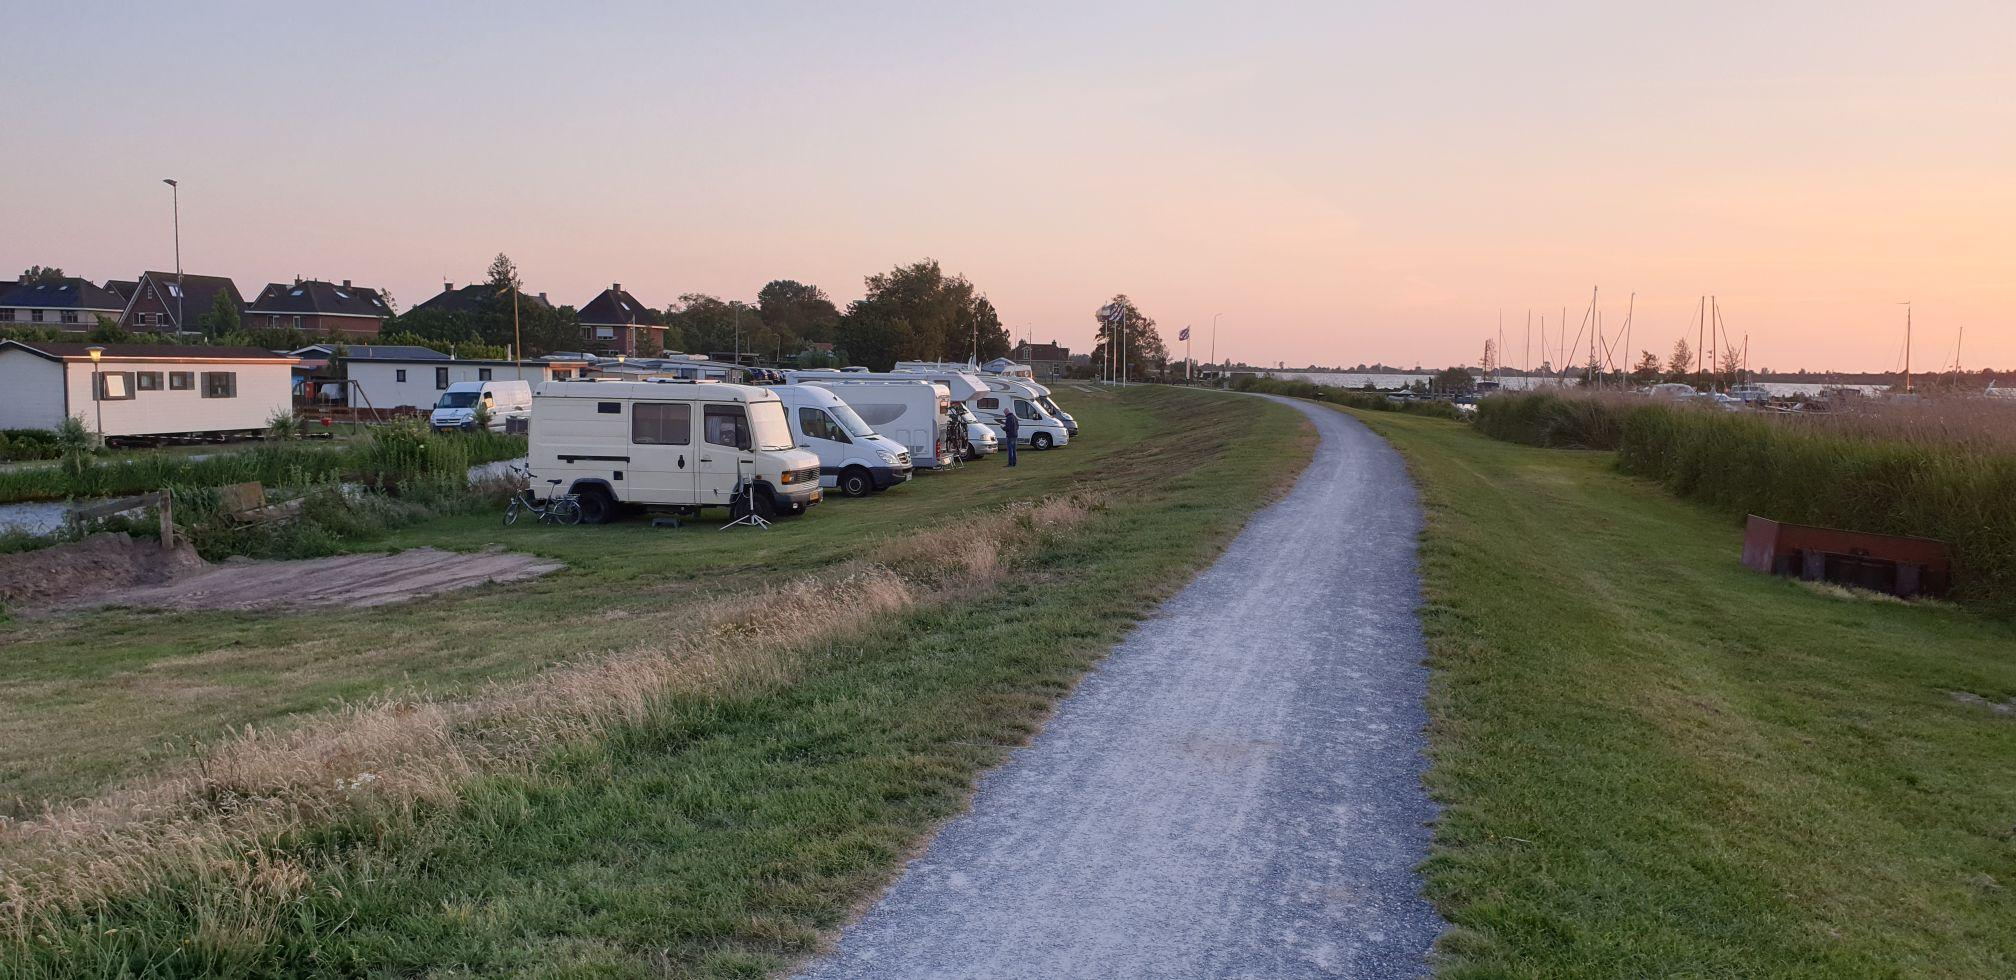 Camping Haven Oosterzee